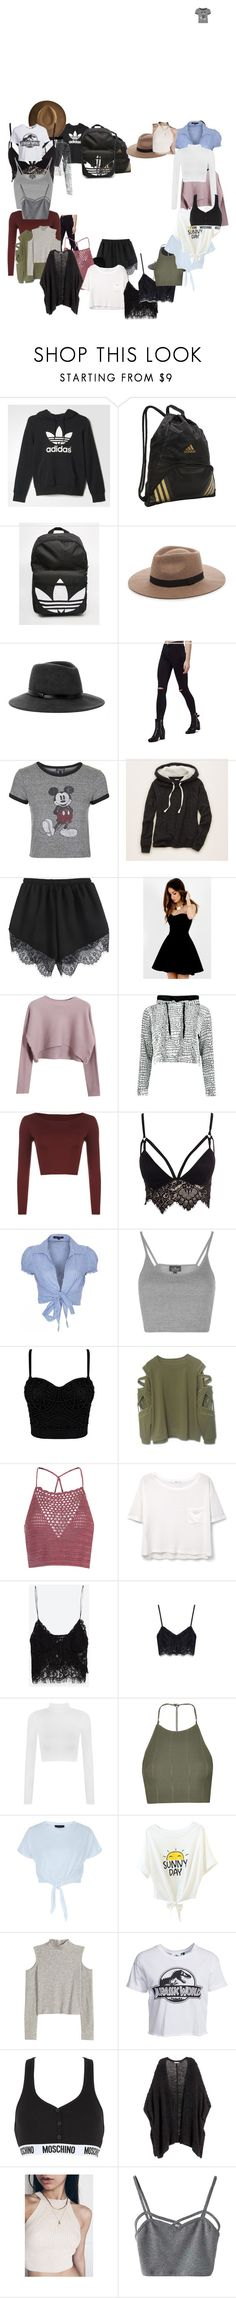 """""""."""" by alyssaramirez-1 ❤ liked on Polyvore featuring adidas, Sole Society, BCBGMAXAZRIA, Topshop, Aerie, Carmin, Chicnova Fashion, WearAll, Club L and QED London"""